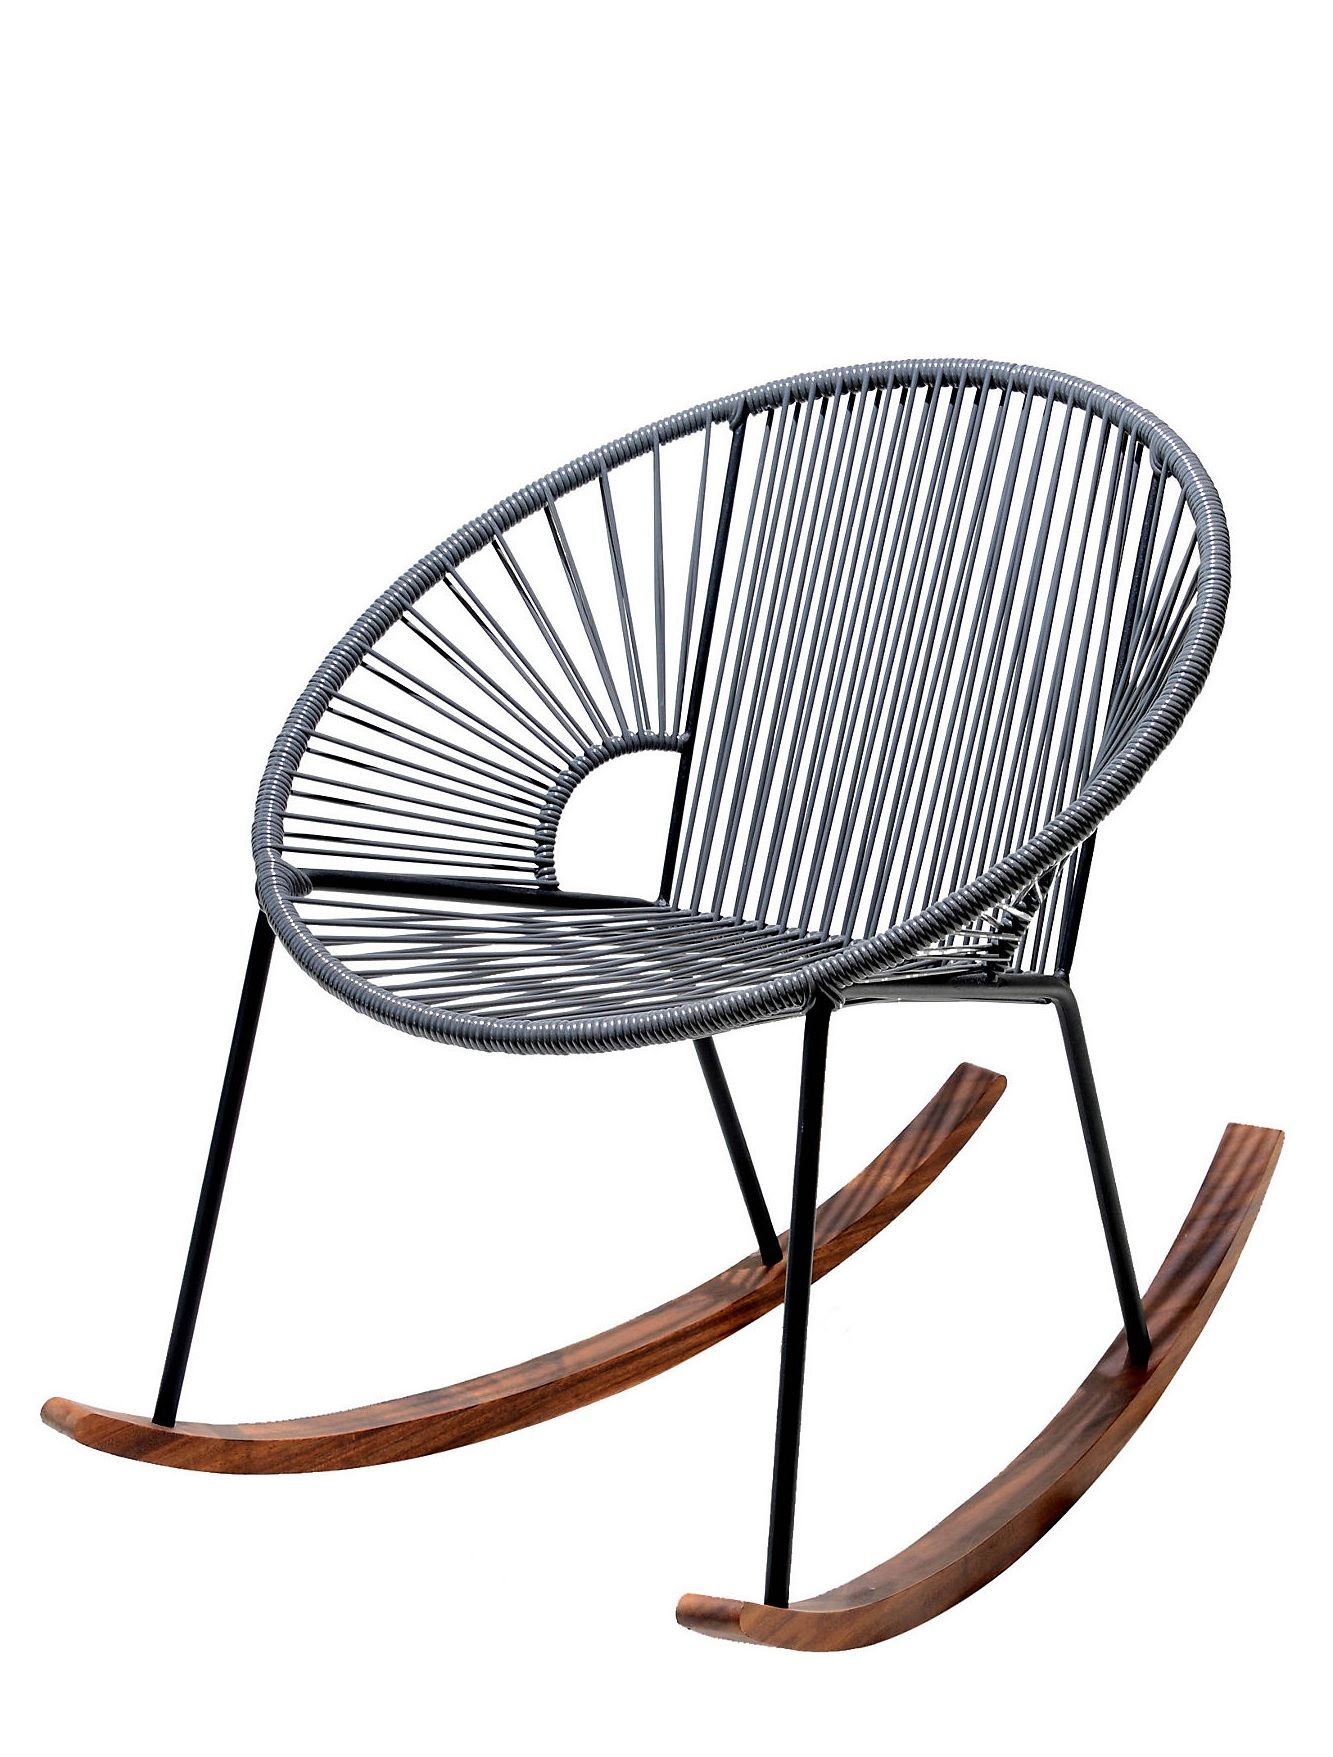 Admirable Ixtapa Rocking Chair By Mexa Daily Drug Dose Rocking Pdpeps Interior Chair Design Pdpepsorg